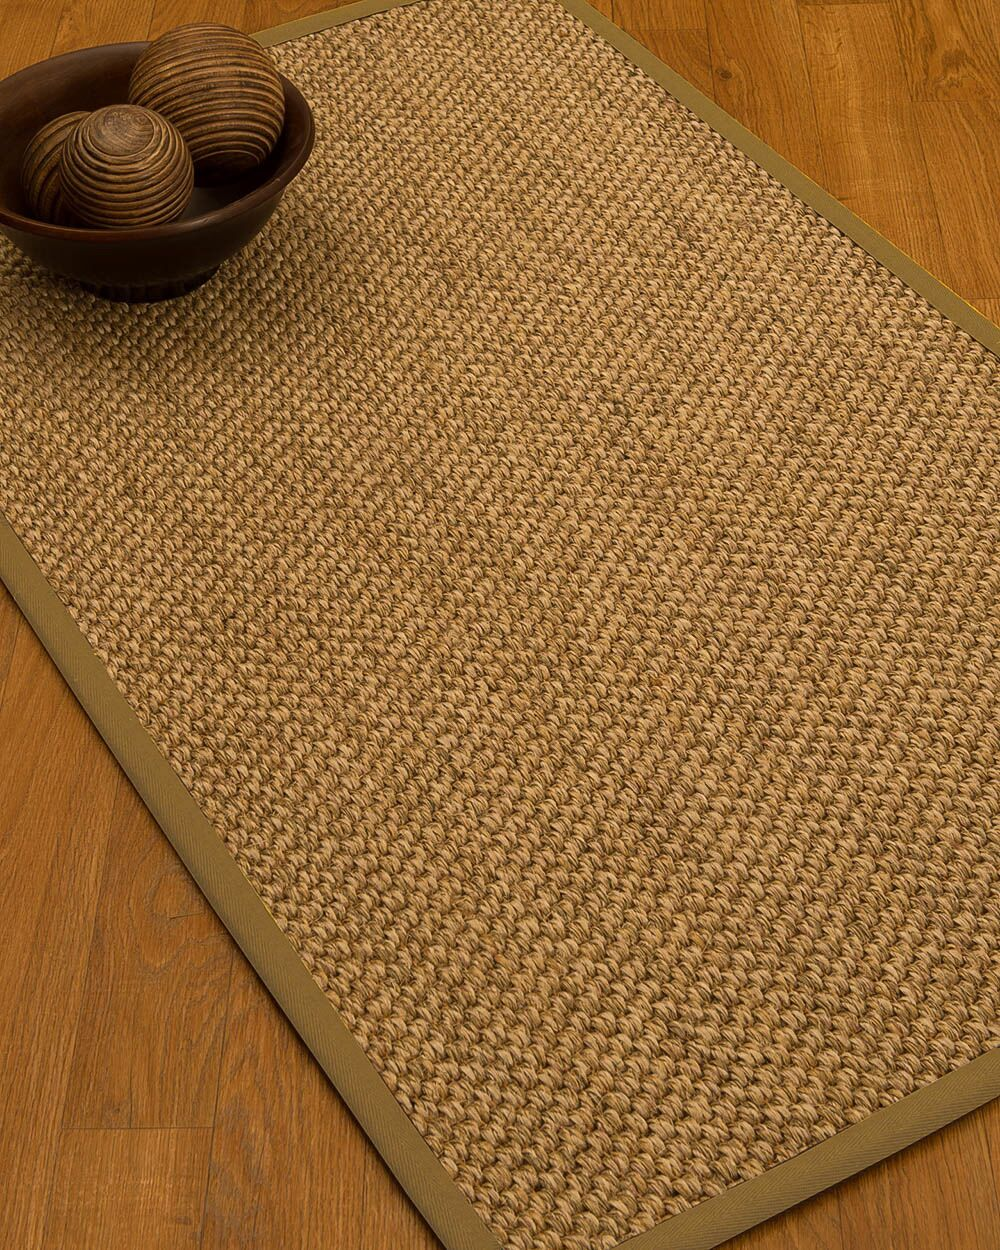 Heier Border Hand-Woven Brown/Beige Area Rug Rug Size: Rectangle 9' x 12', Rug Pad Included: Yes